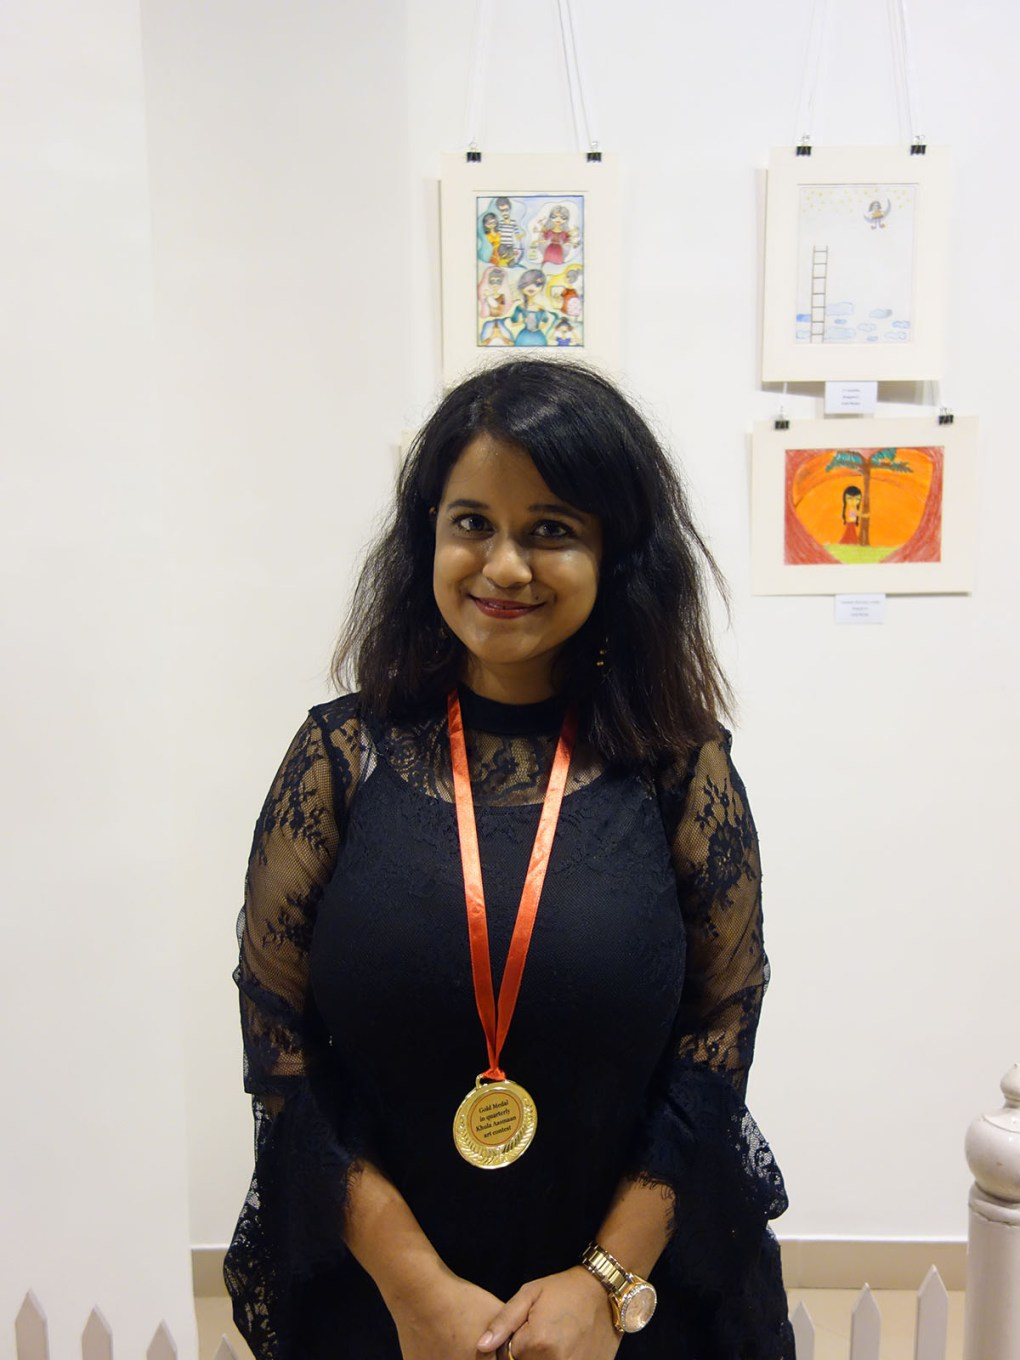 Diptashree Mondal with her medal at Khula Aasmaan art exhibition of medal winning artworks at Mumbai - October 2017. Diptashree's video is part of videos of medal winning college students.